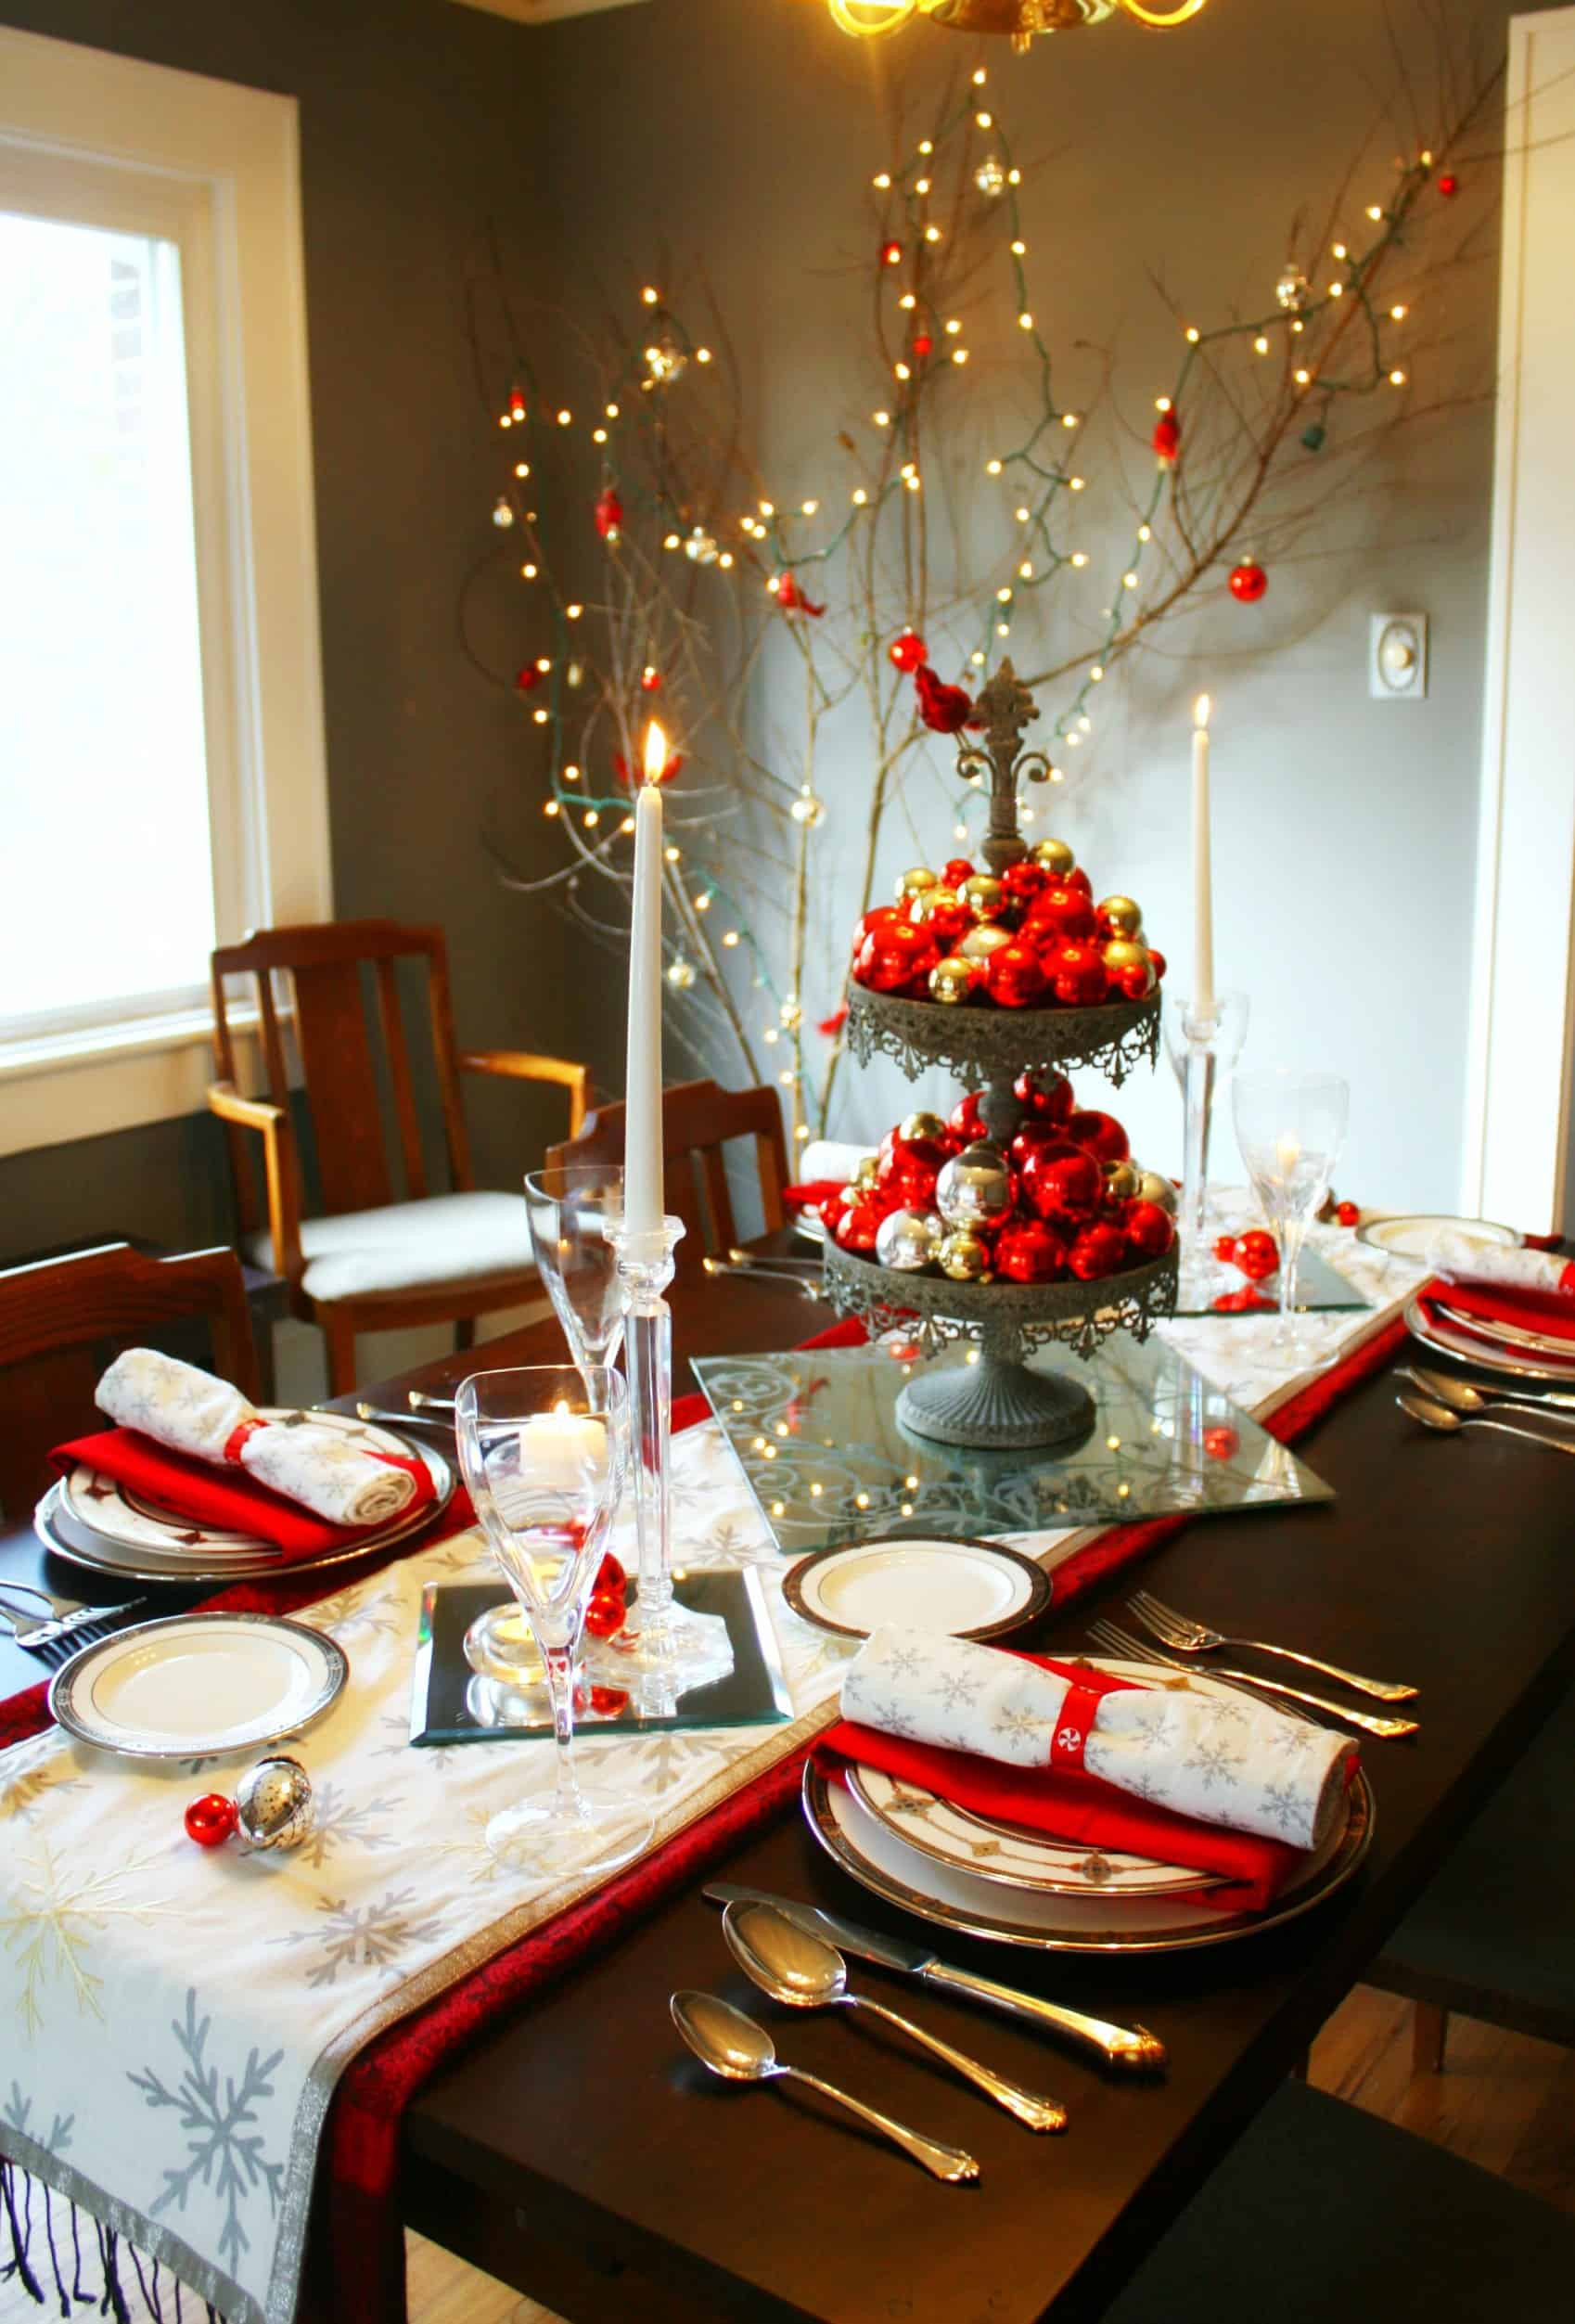 Christmas Dinner Table Decorations  20 Wonderful Christmas Dinner Table Settings For Merry